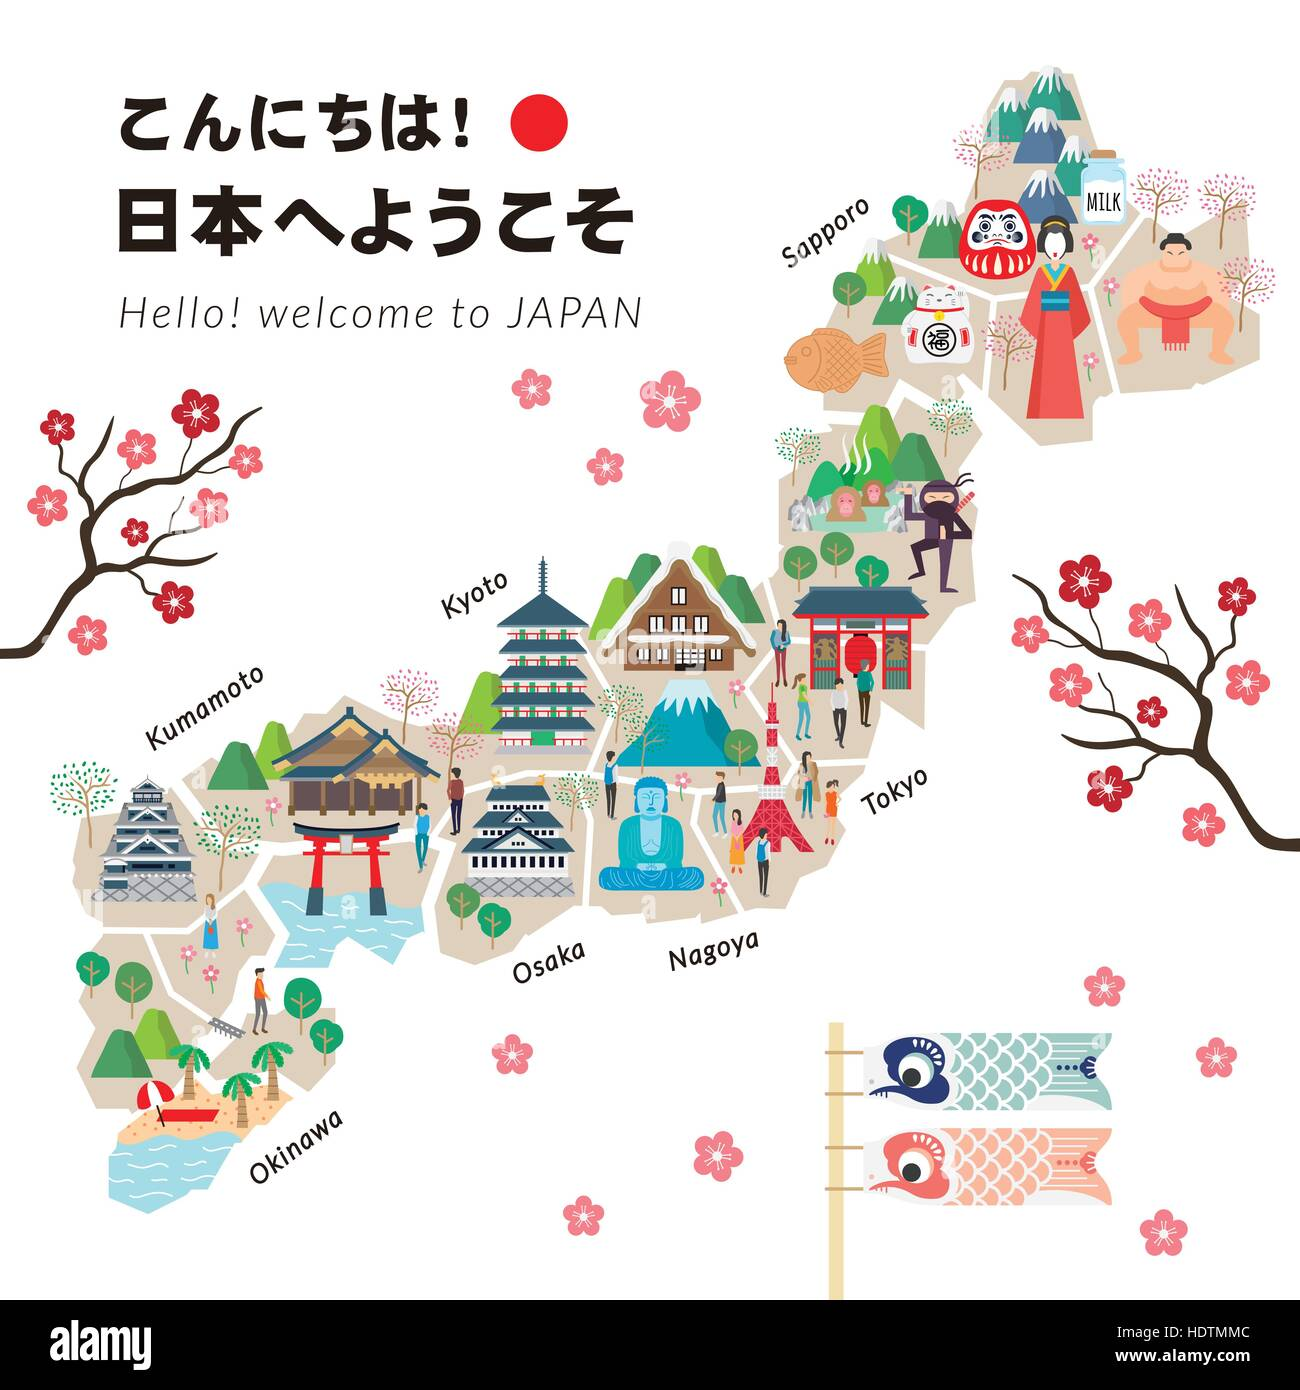 Adorable Japan Travel Map Poster Hello Welcome To Japan In - Japan map poster